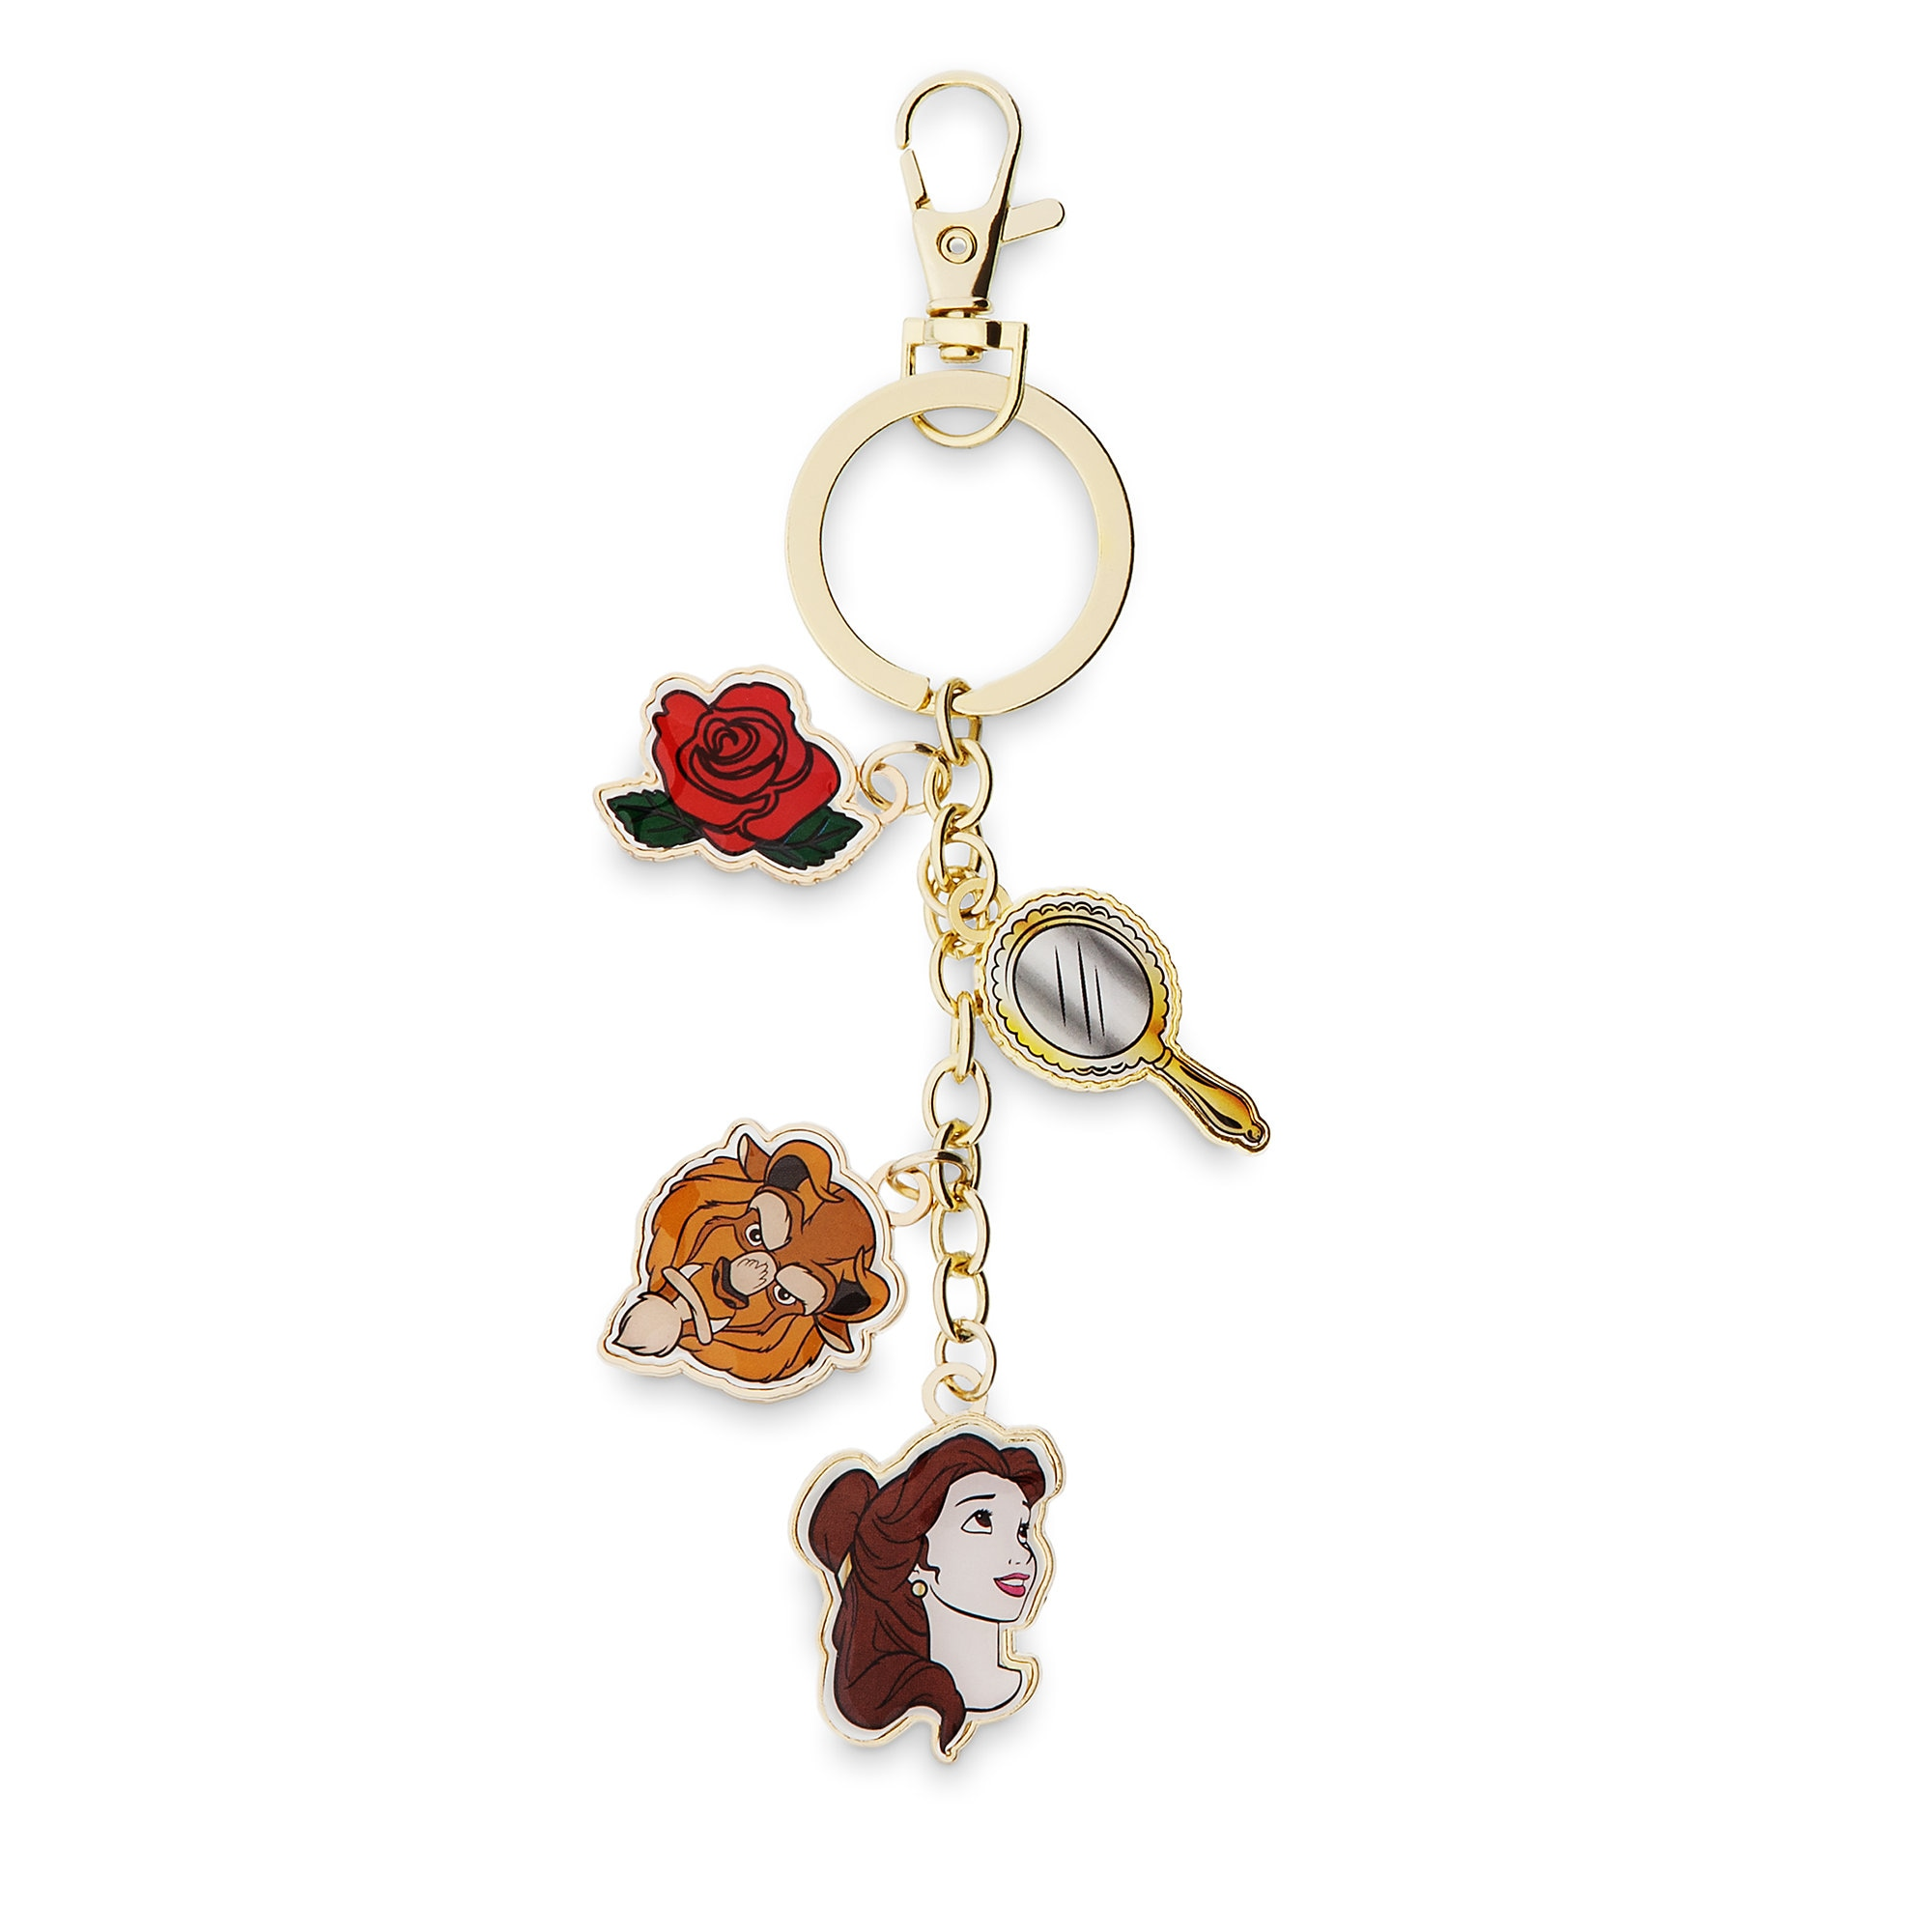 Beauty and the Beast Keychain by Danielle Nicole